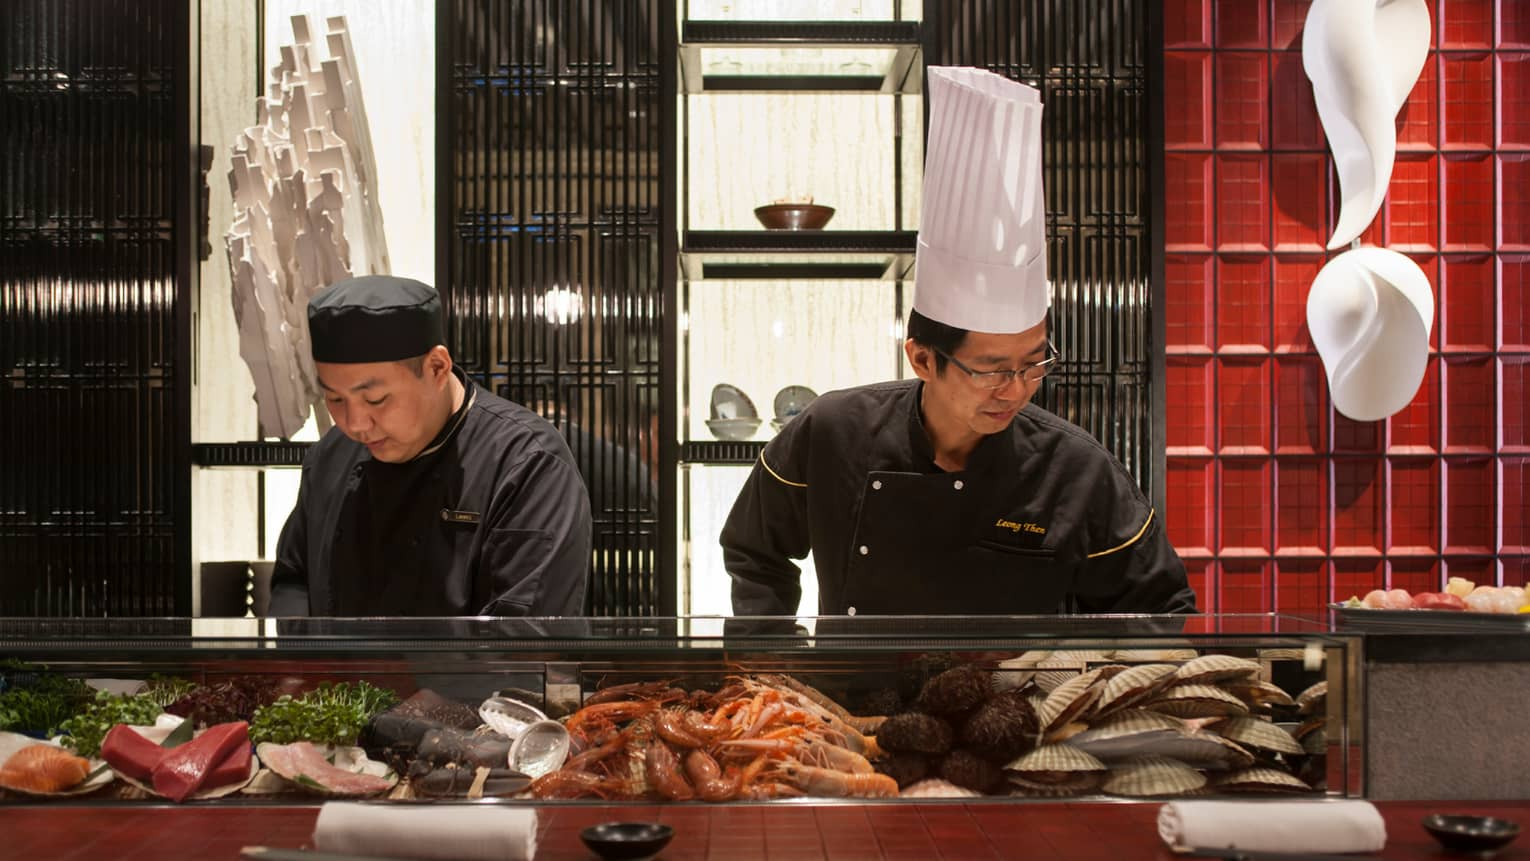 Sushi chefs prepare food behind glass display with fresh seafood, clams, shrimp